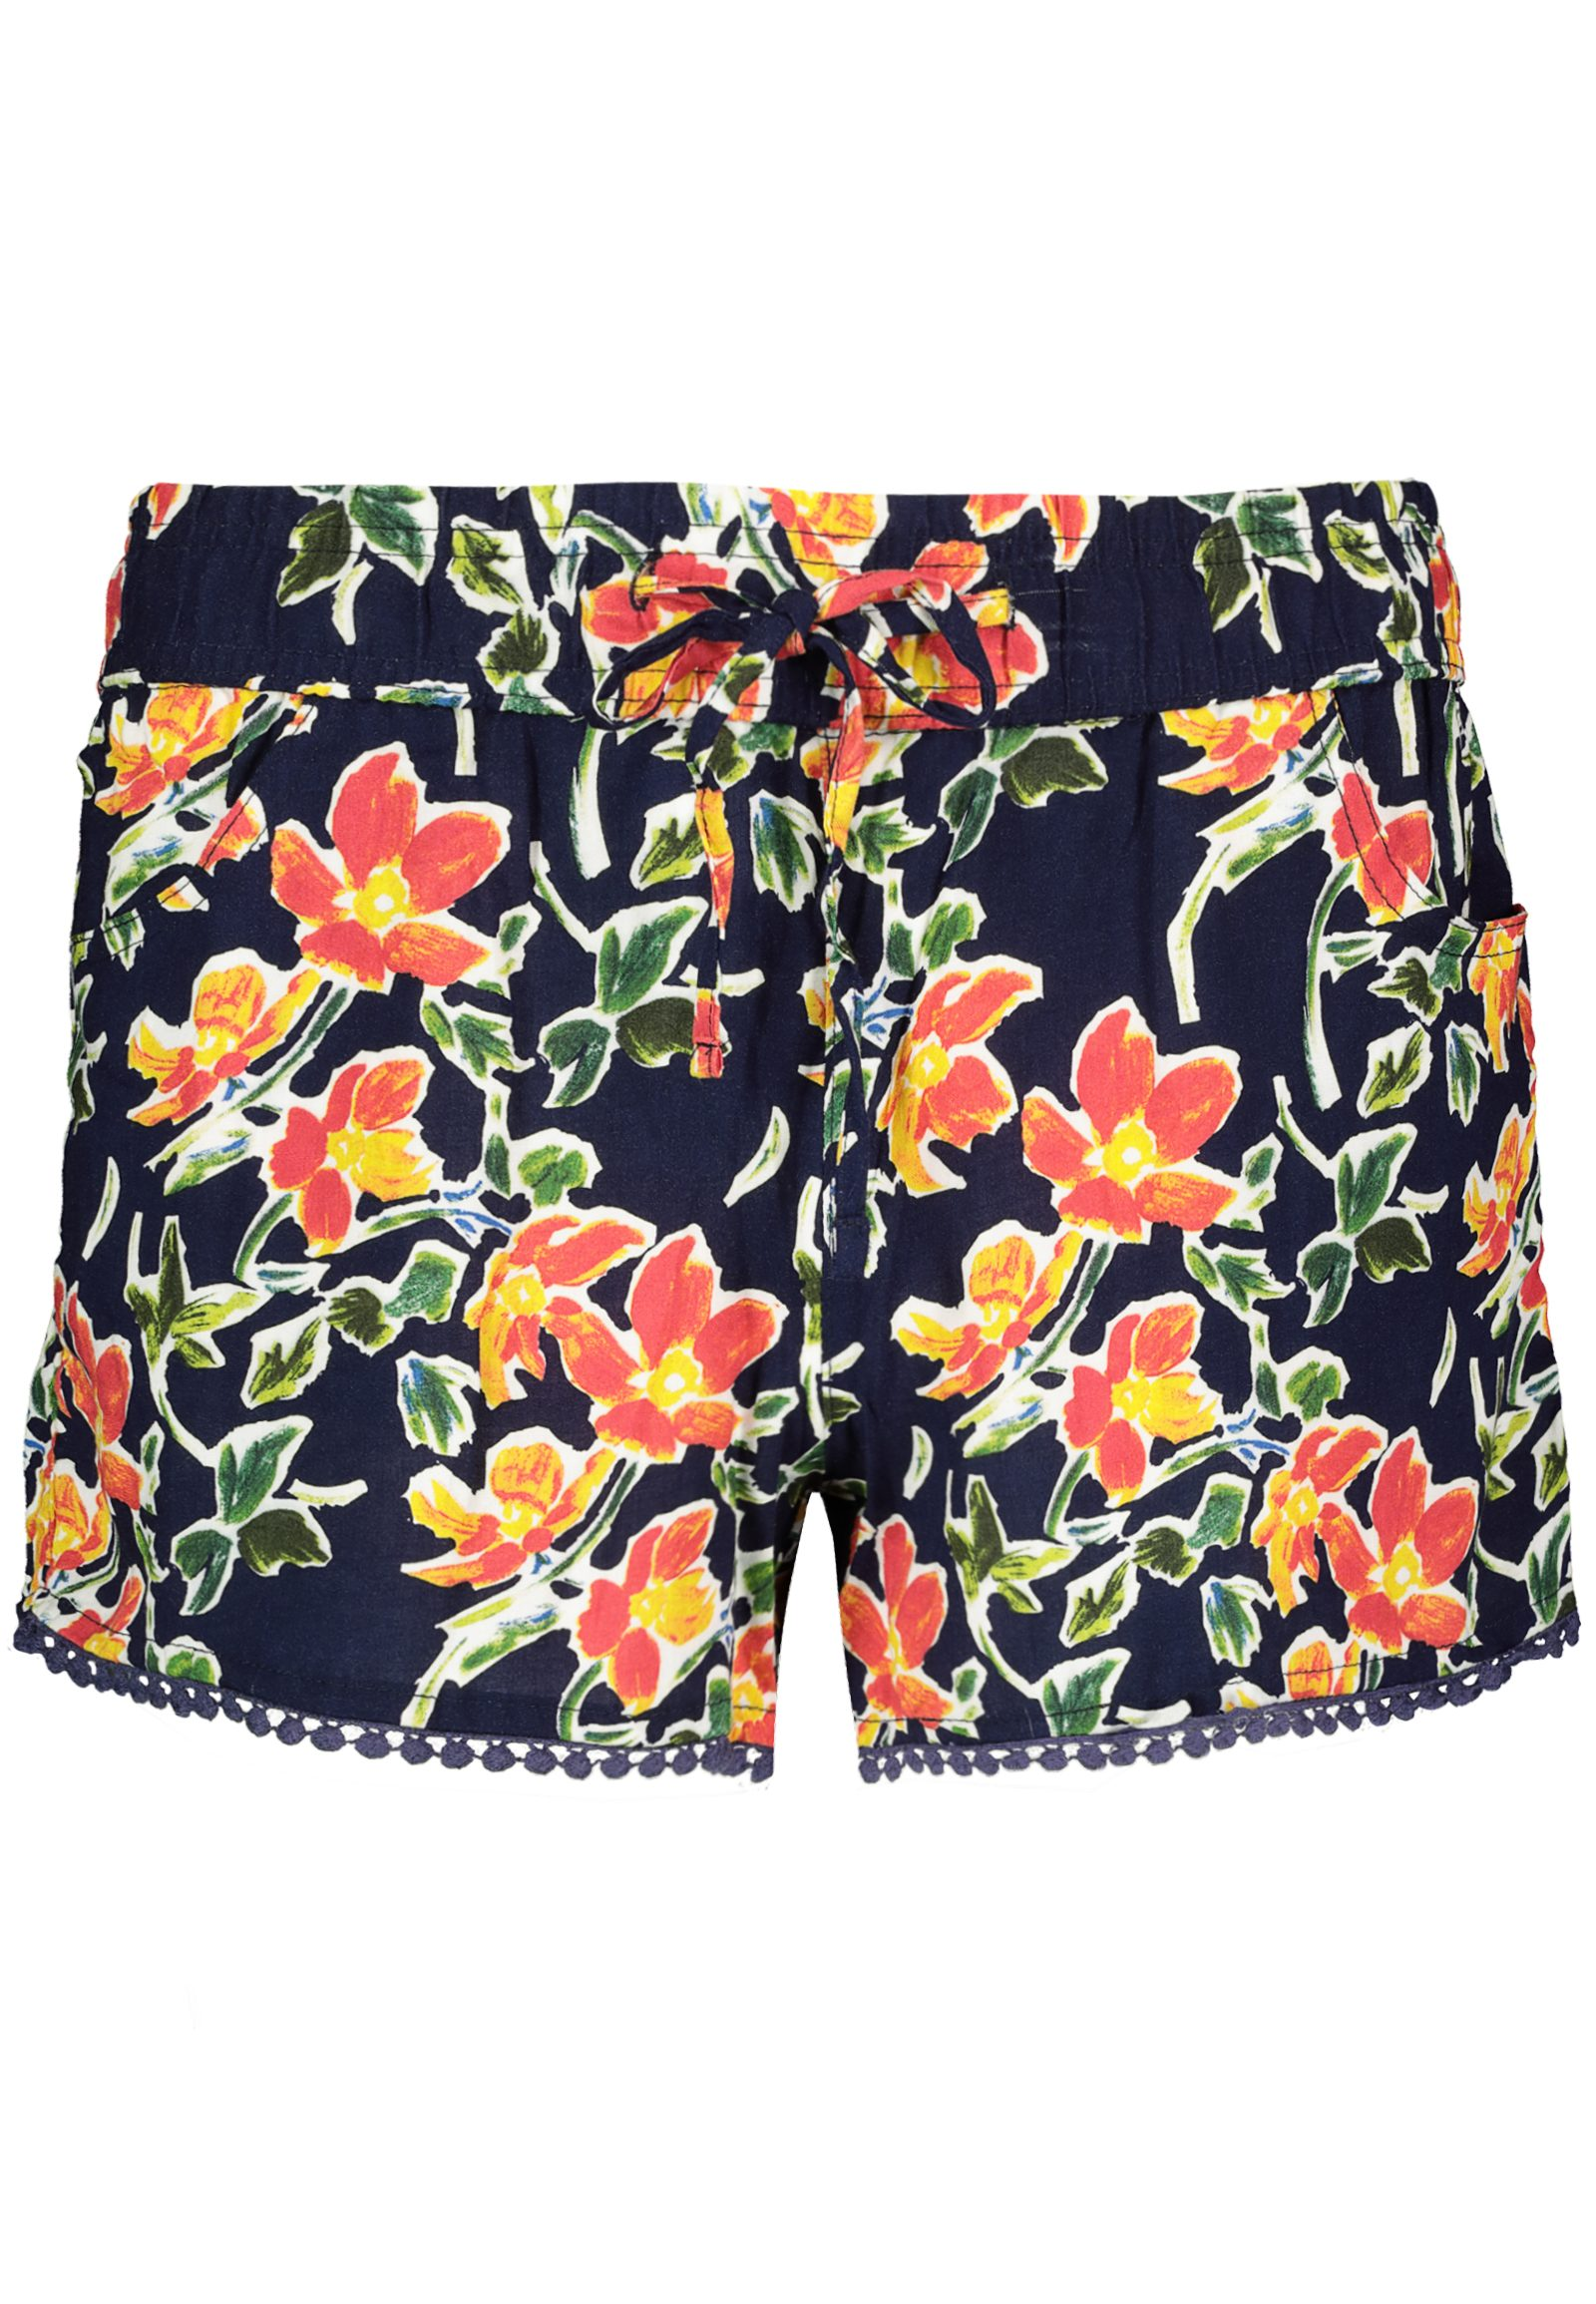 Hosen - Leichte Sommershorts mit Muster › Fresh Made › orange  - Onlineshop FASHION5